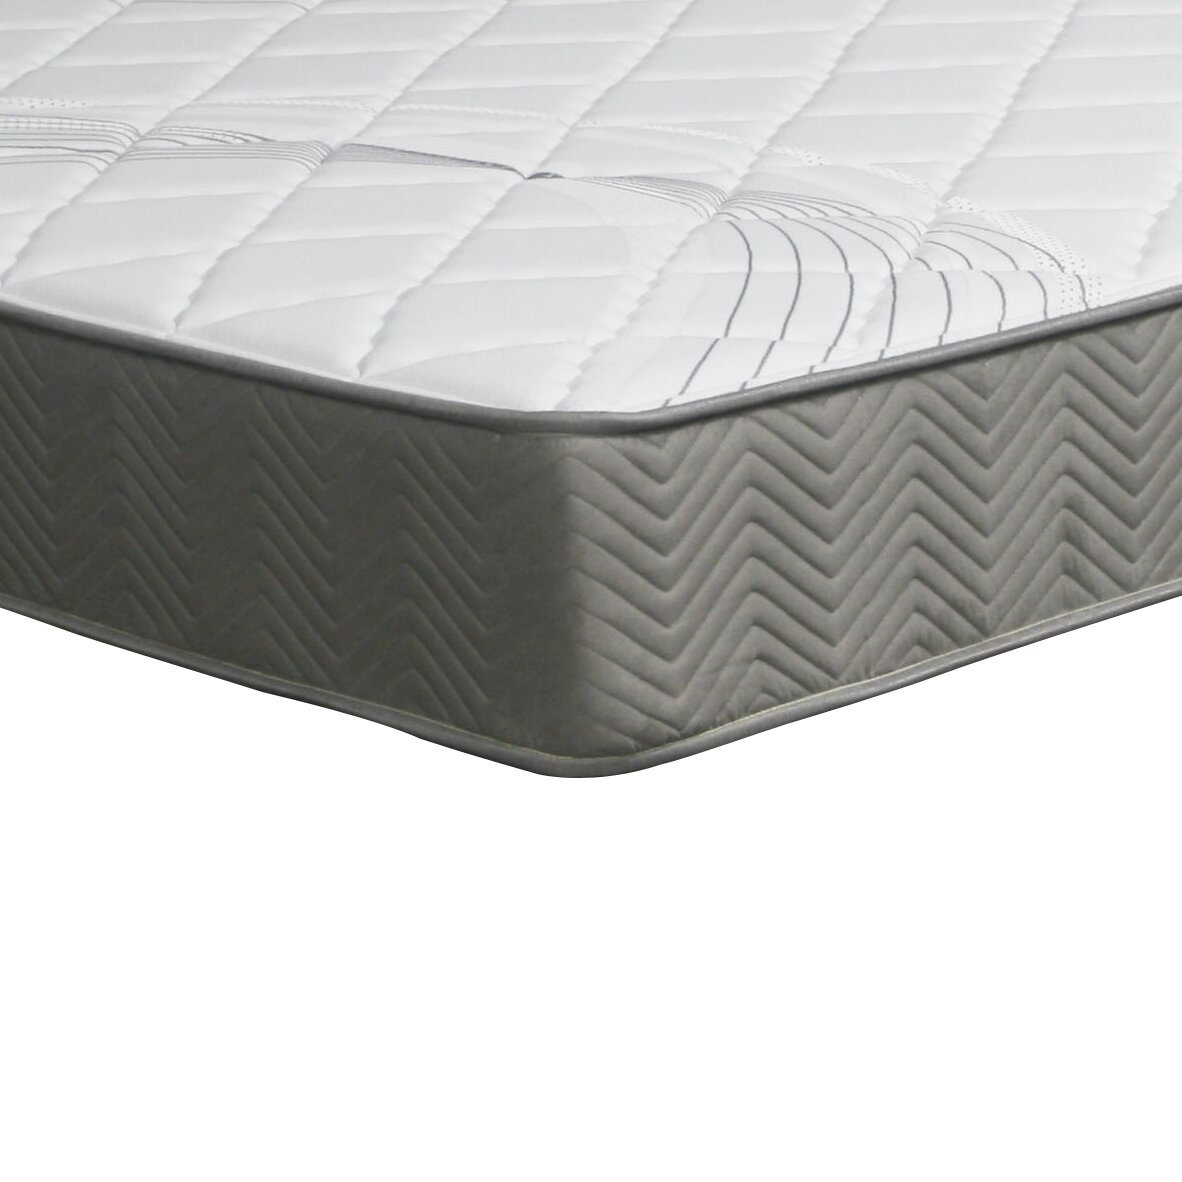 Anew edit tight top 10 firm mattress for Top 10 best beds